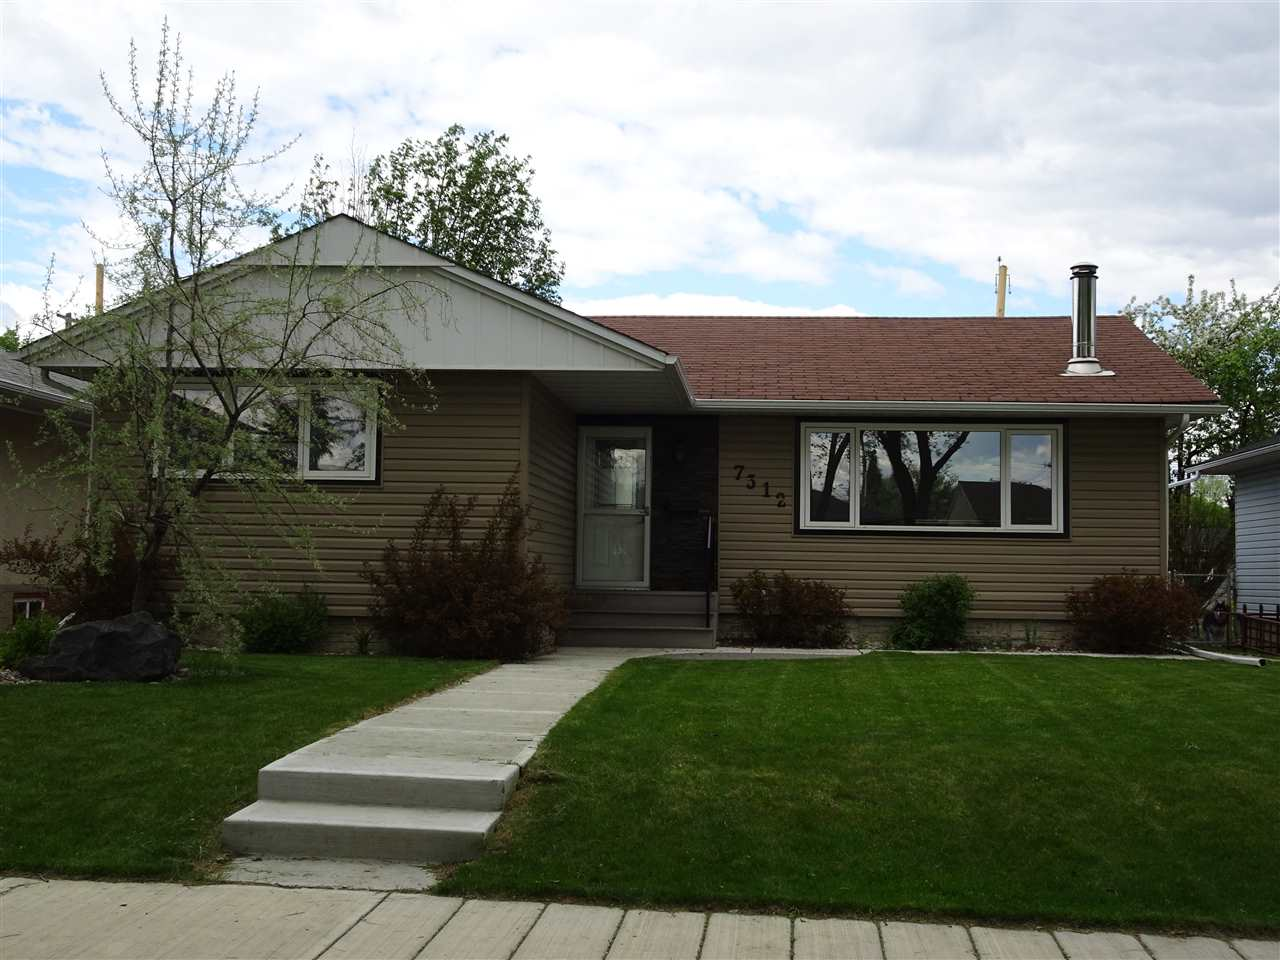 Main Photo: 7512 77 Avenue in Edmonton: Zone 17 House for sale : MLS(r) # E4068715